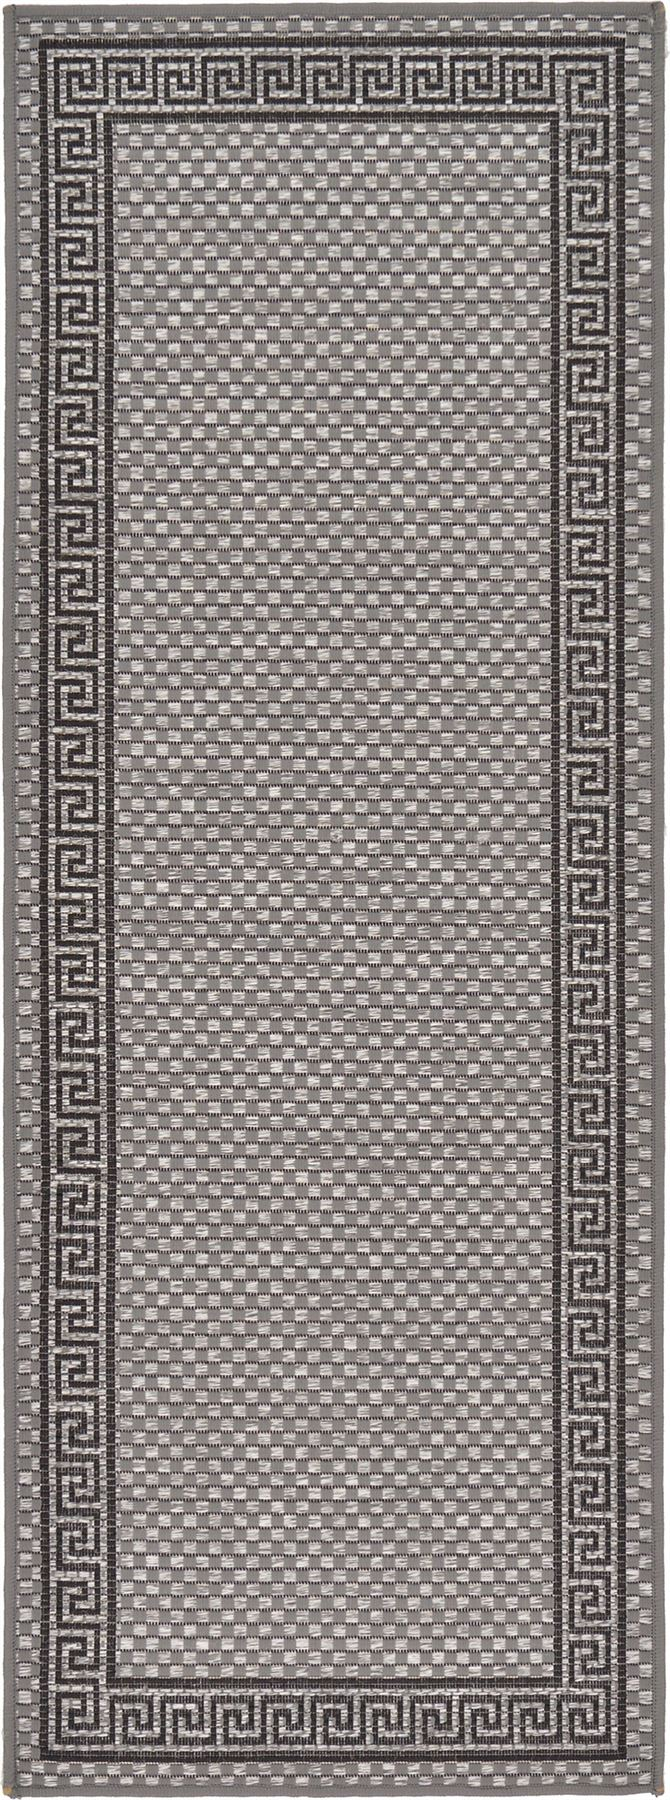 Modern-Outdoor-Thin-Area-Rug-Contemporary-Plain-Large-Small-Carpet-Gray-Brown thumbnail 12